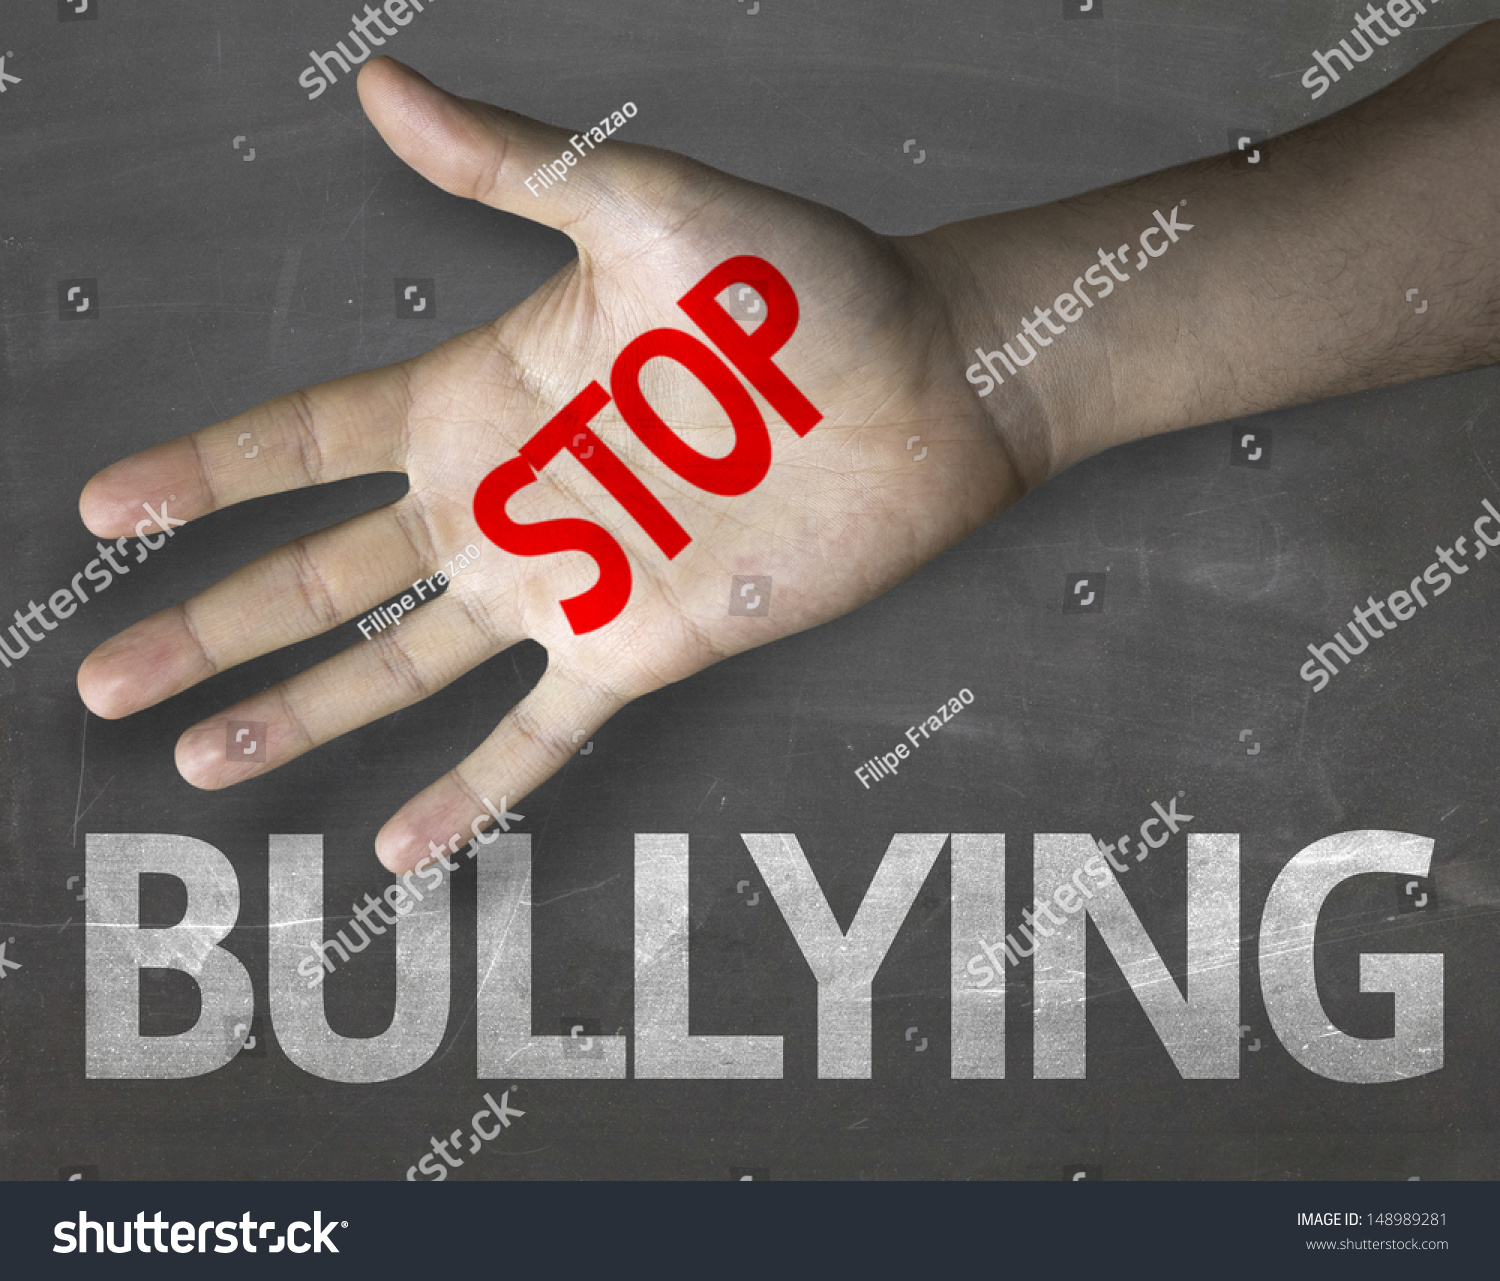 bullying compositions Research suggests that 13 percent of elementary school kids are victims of bullying while 11 percent are bullies  how to stop bullying in school six things you .